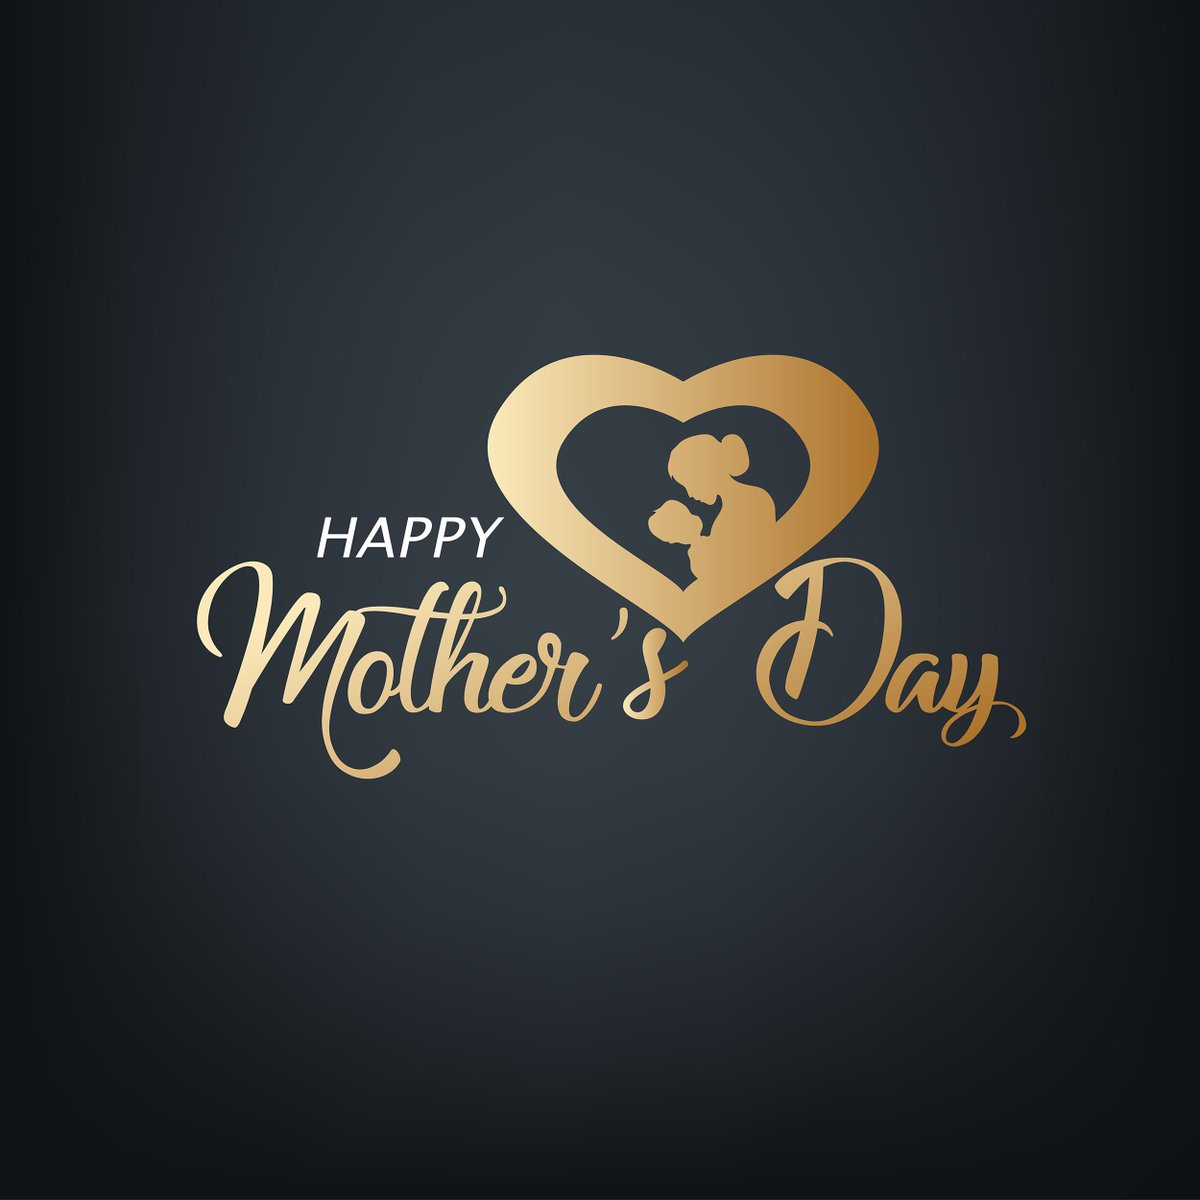 #Euno would like to wish all mothers across the world a Happy Mothersday #MothersDay #mothersday2020  #cryptocurrency https://t.co/g6D0HWBVPx